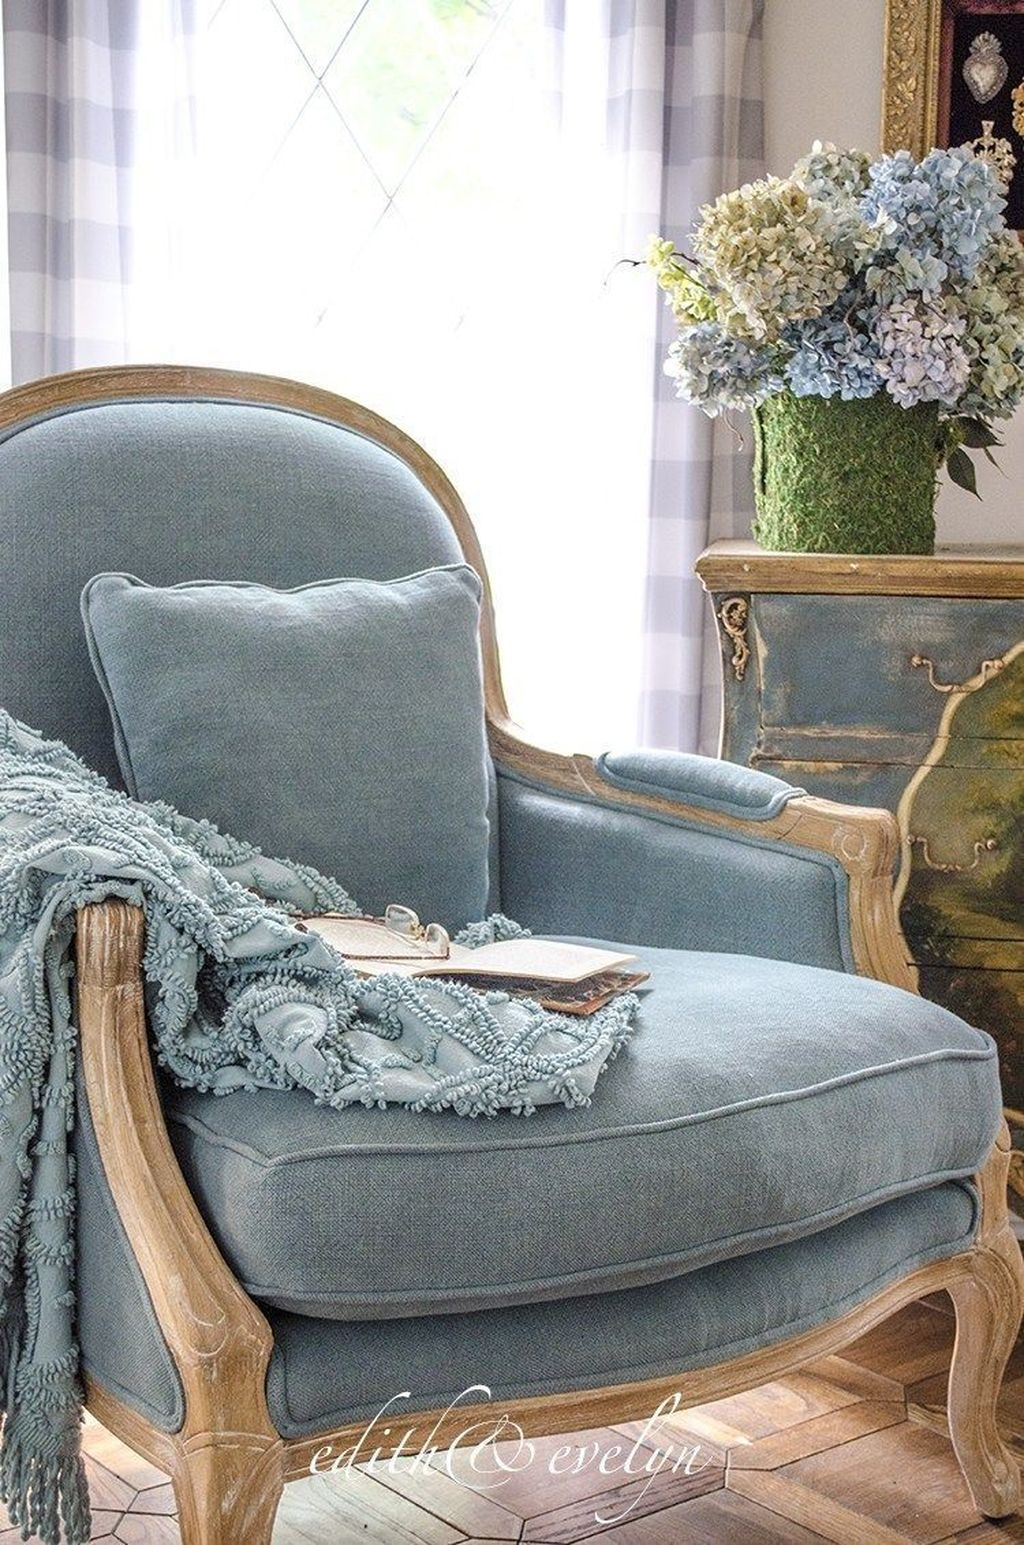 Dreamy French Home Decoration Ideas To Try In Your Home 11